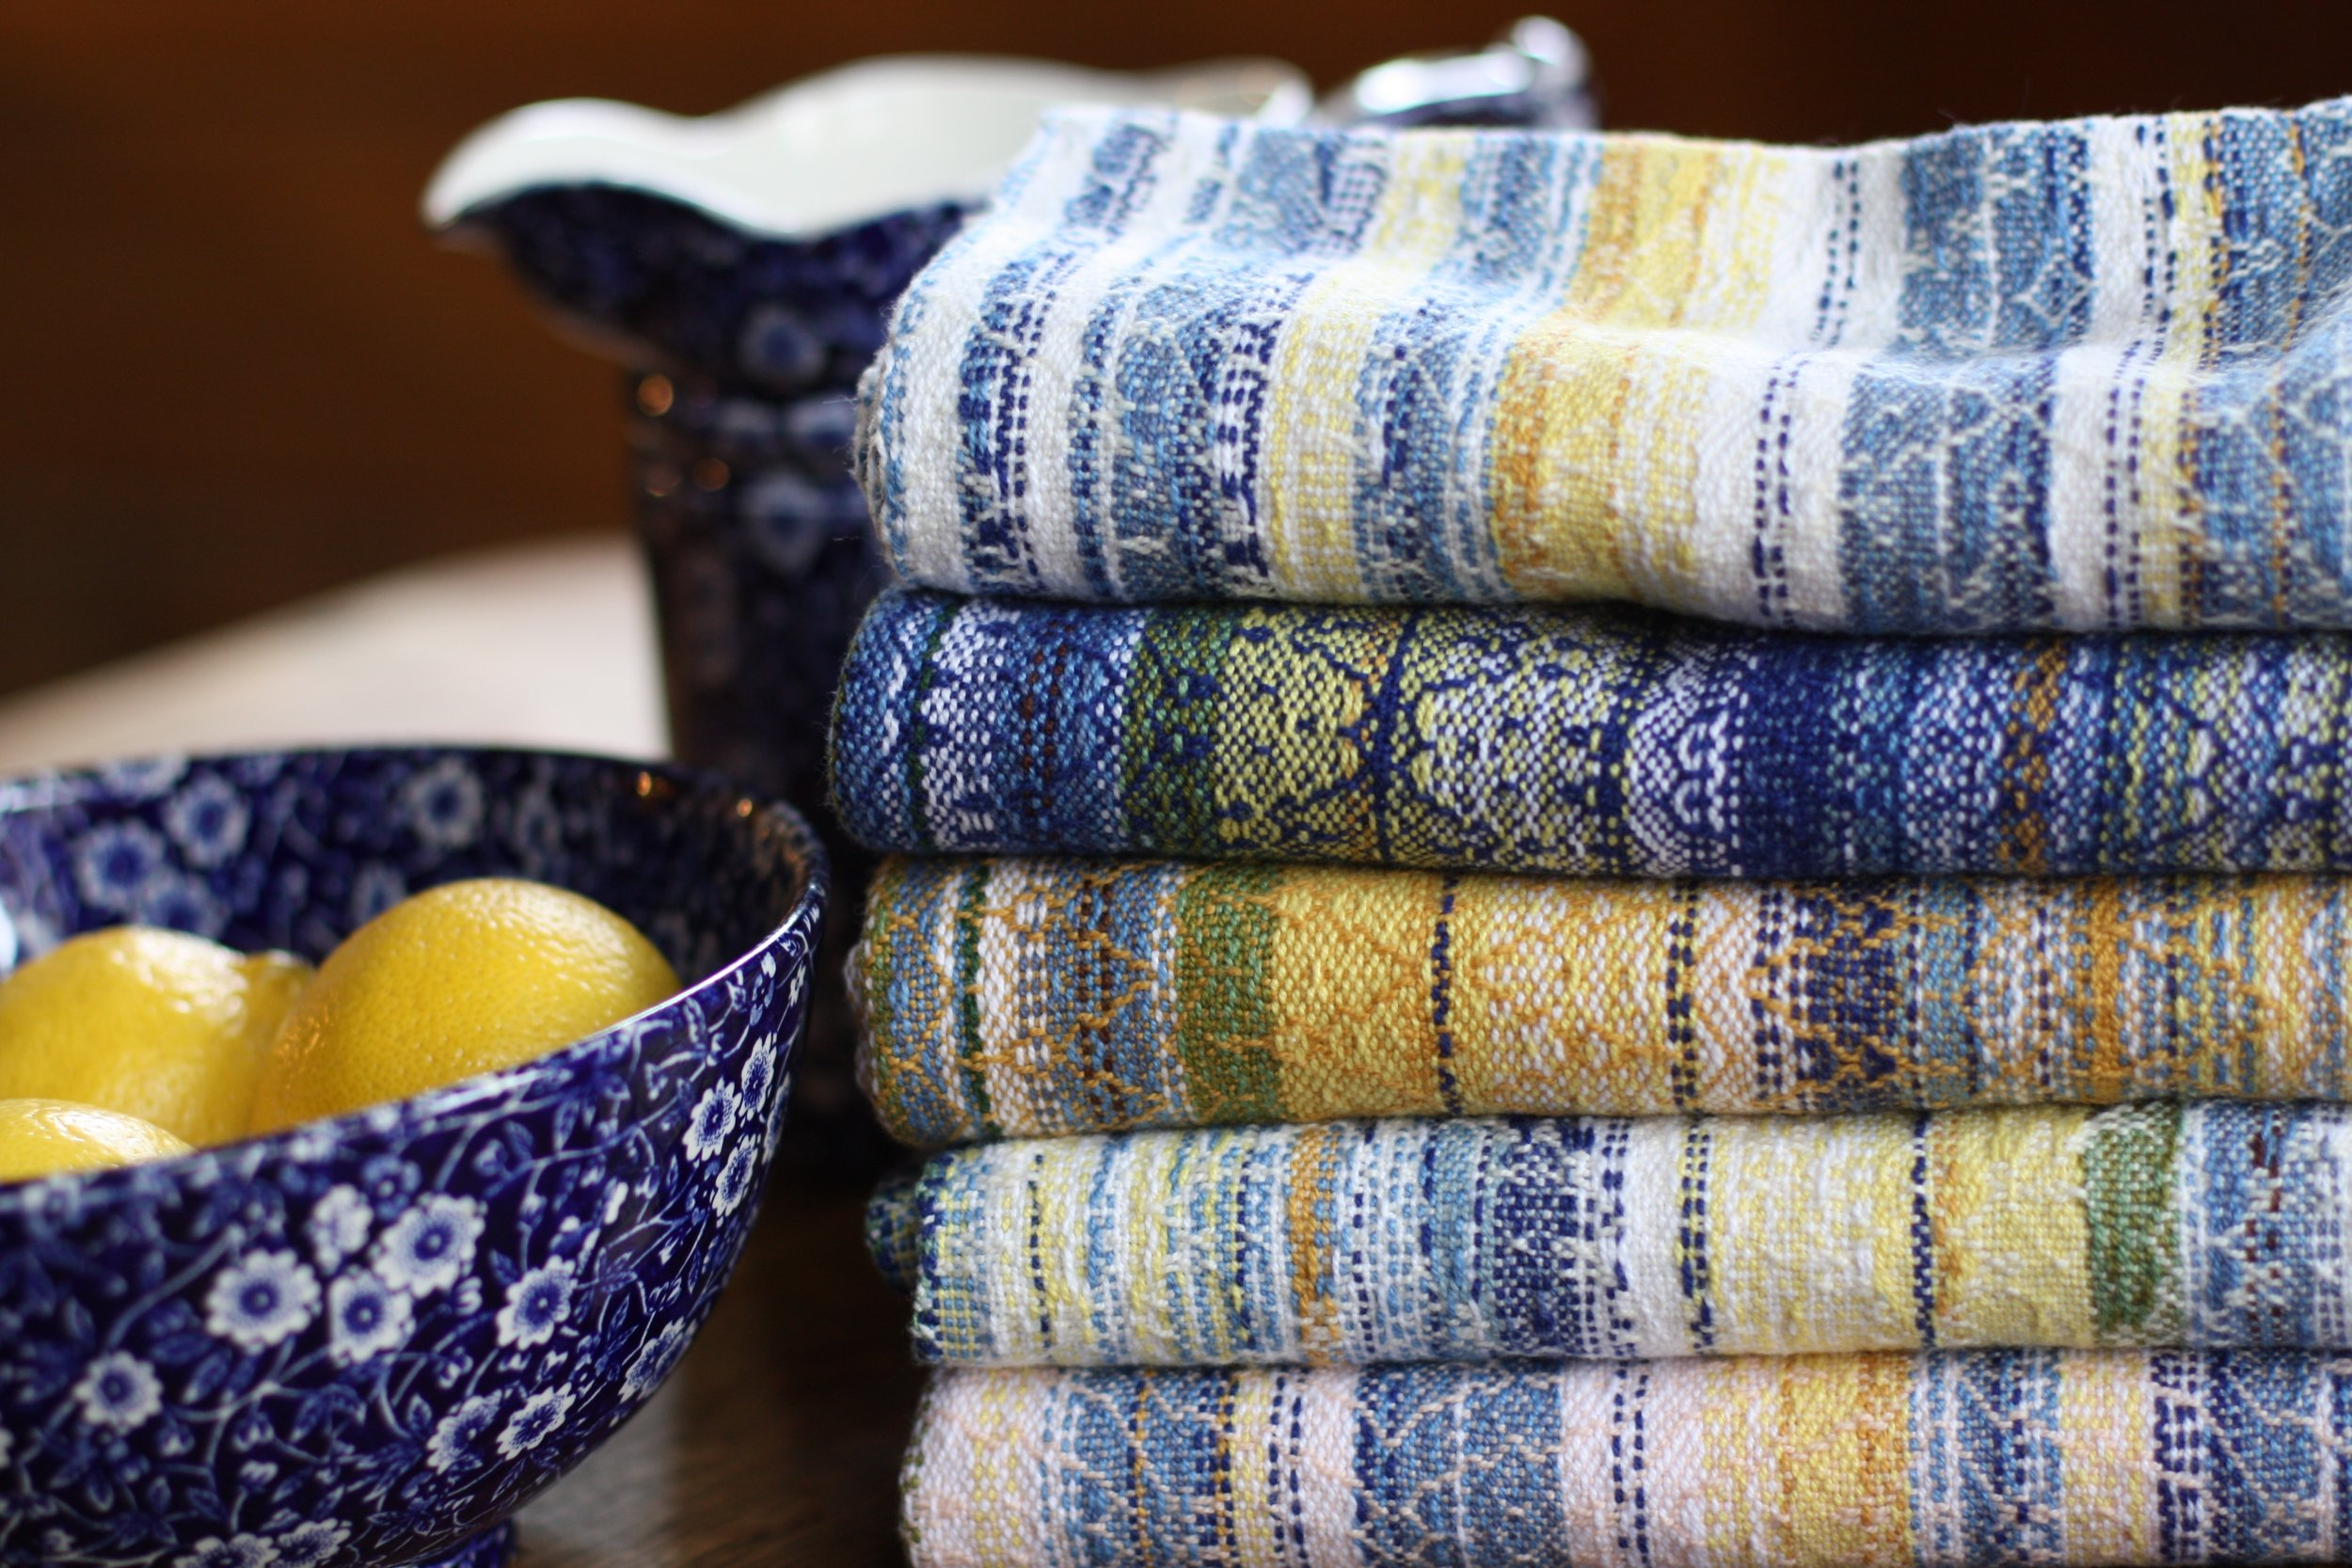 Farmhouse kitchen tableau: 5 handwoven tea towels, a pitcher, and a bowl of lemons | 14 Mile Farm Handweaving